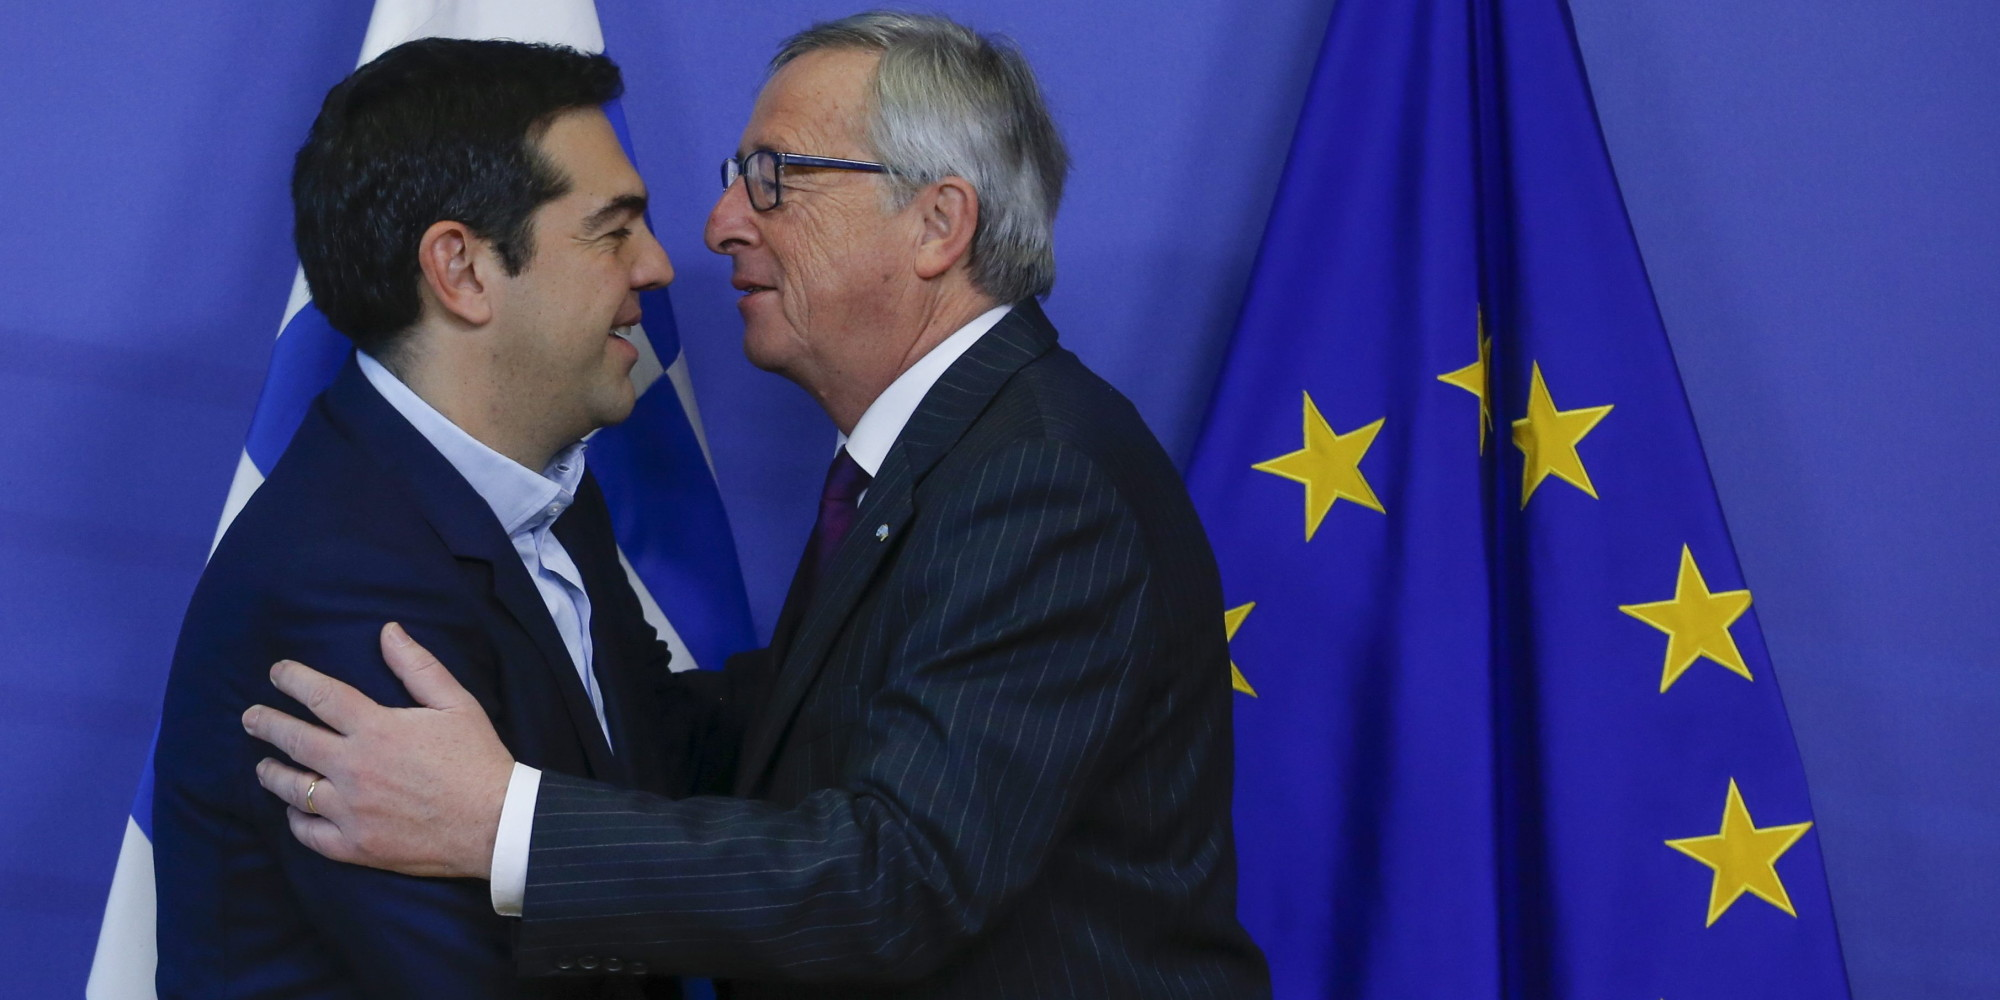 epa04603076 European Commission President Jean Claude Juncker (R) welcomes Greek Prime Minister Alexis Tsipras prior to a meeting at the EU Commission headquarters in Brussels, Belgium, 04 February 2015. Greek Prime Minister Alexis Tsipras arrived in Brussels on 04 February ss part of his tour of European capitals to press their demands for debt relief. EPA/OLIVIER HOSLET +++(c) dpa - Bildfunk+++